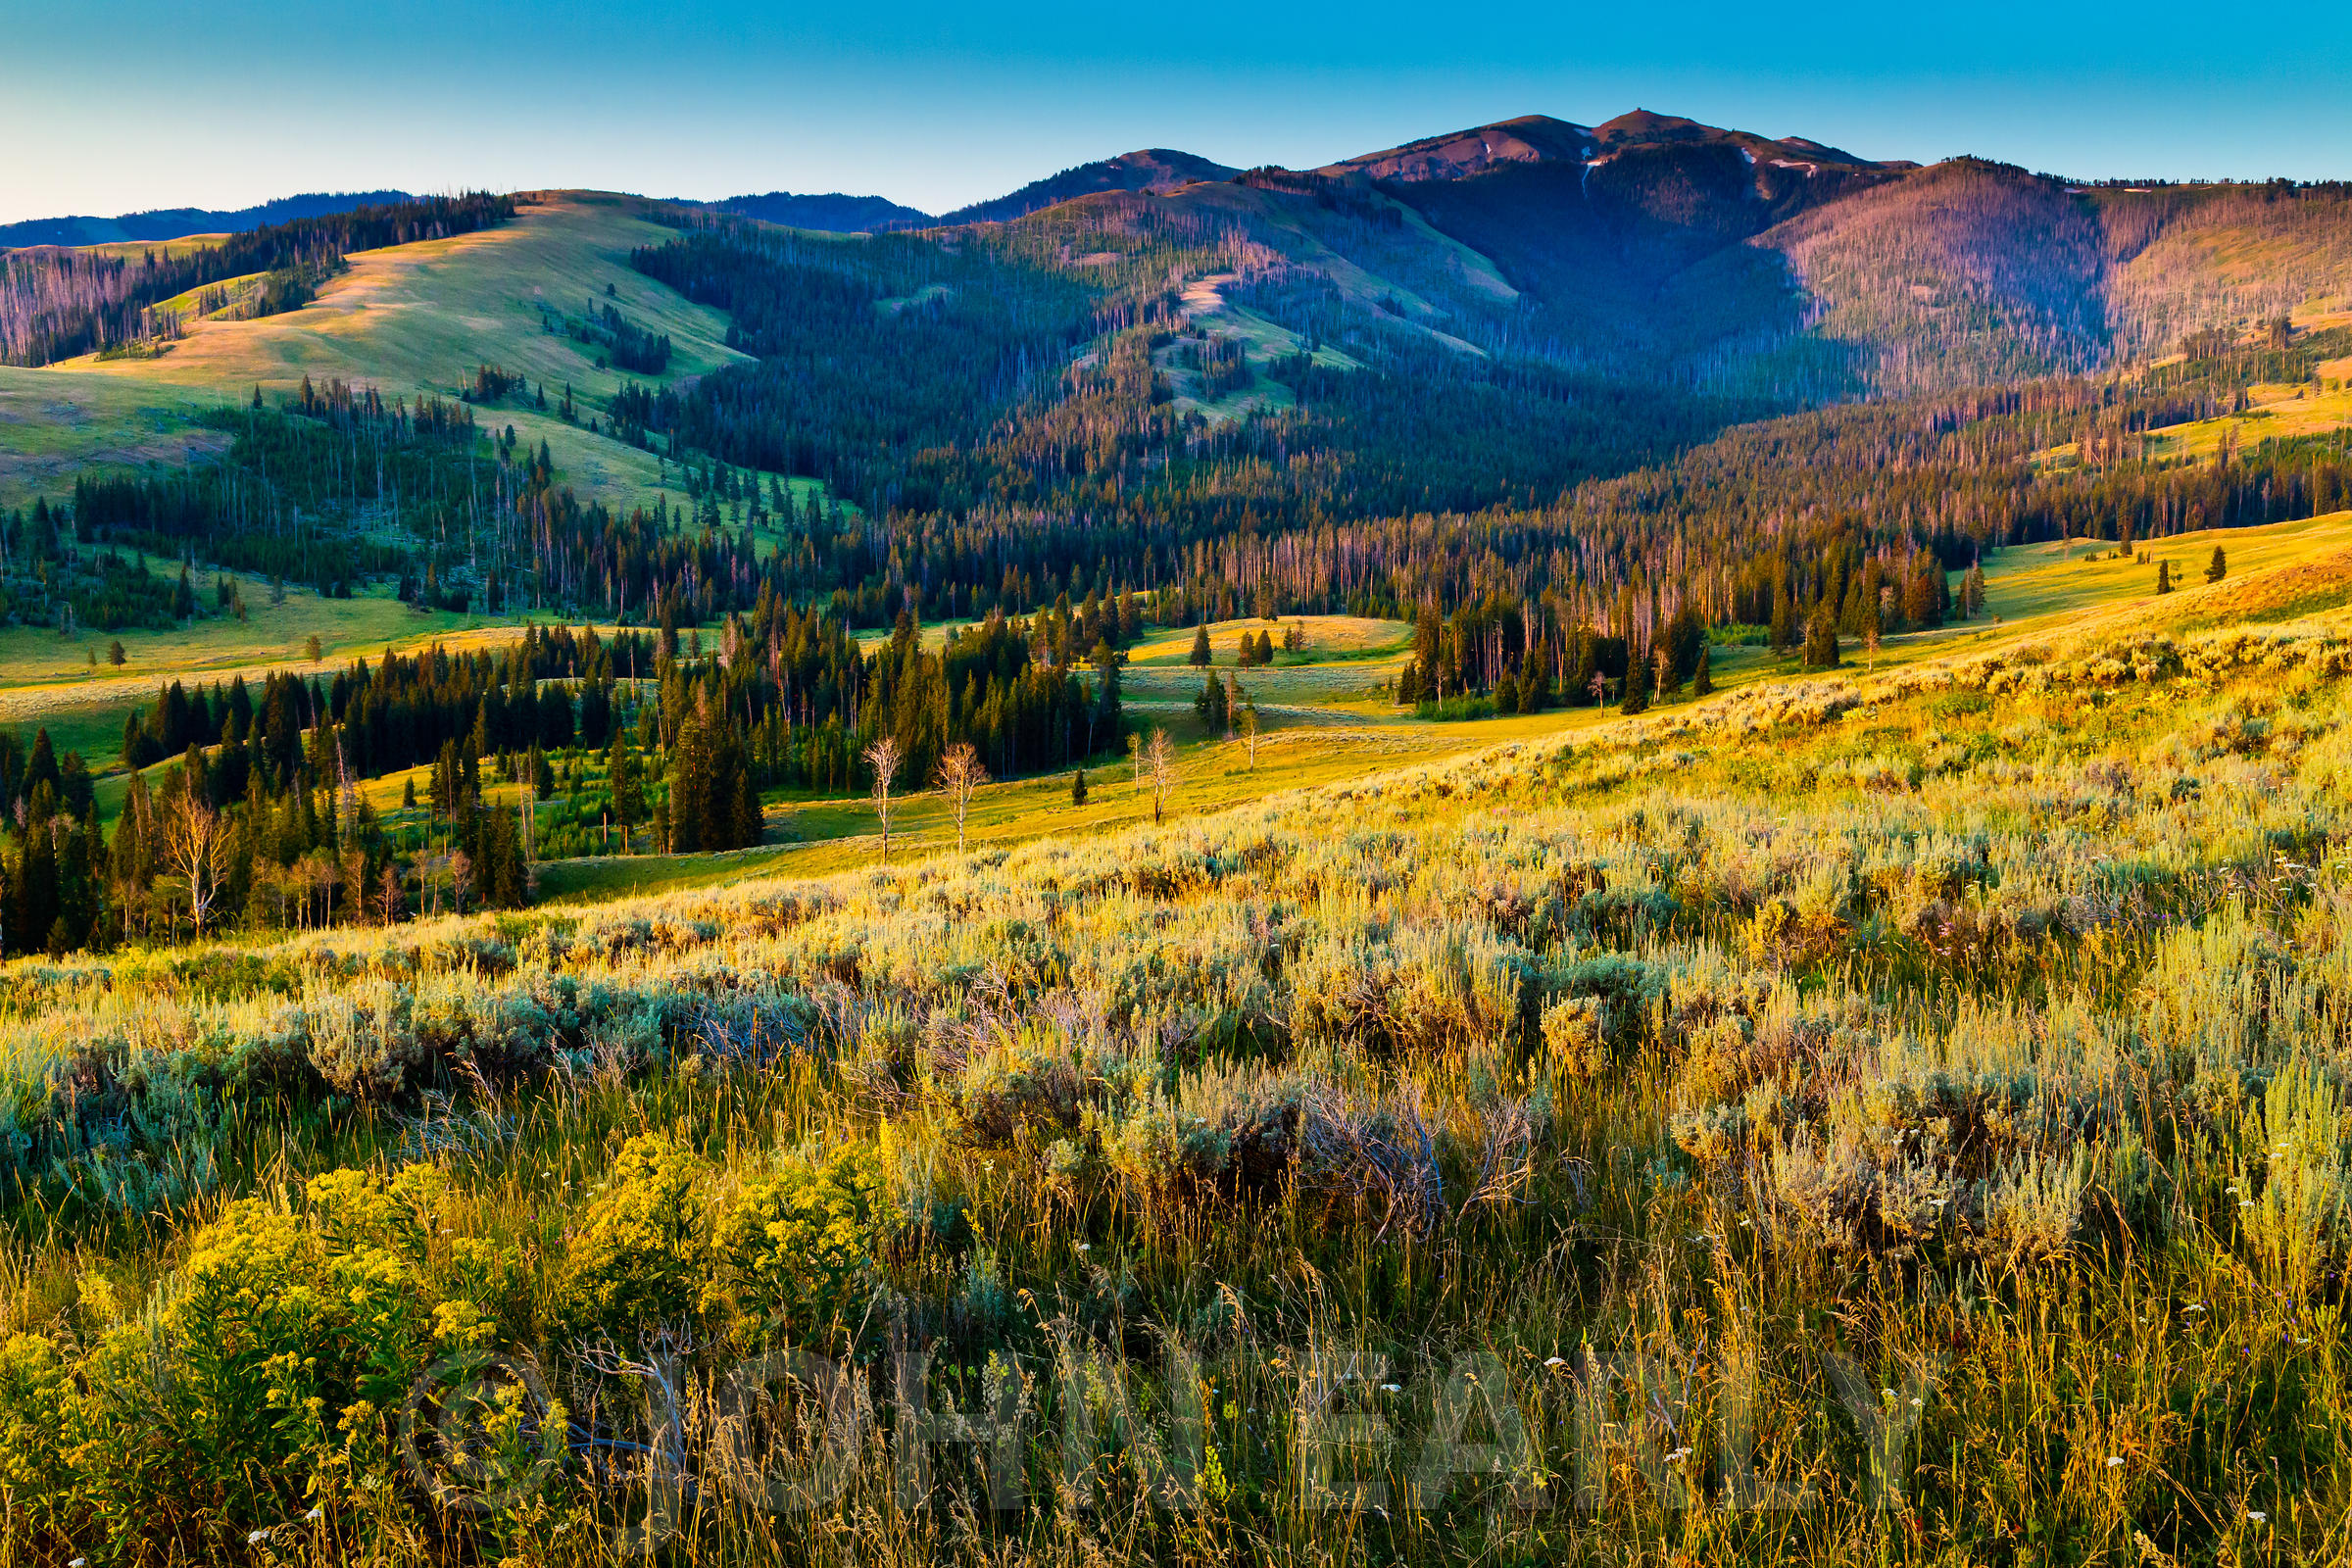 Meadows and trees at sunrise, Yellowstone National Park.